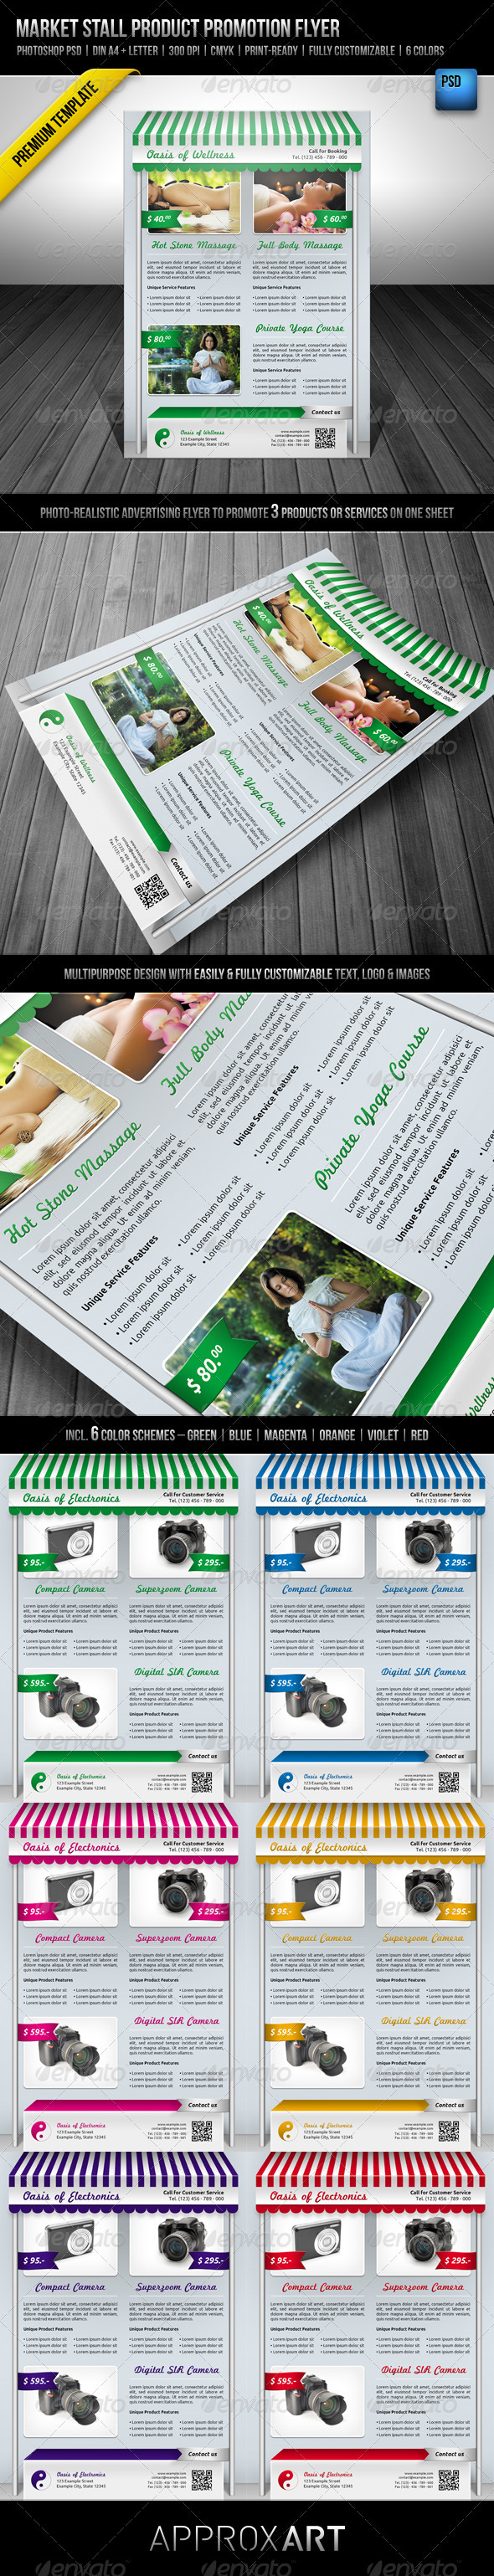 Market Stall Product Promotion Flyer - Commerce Flyers